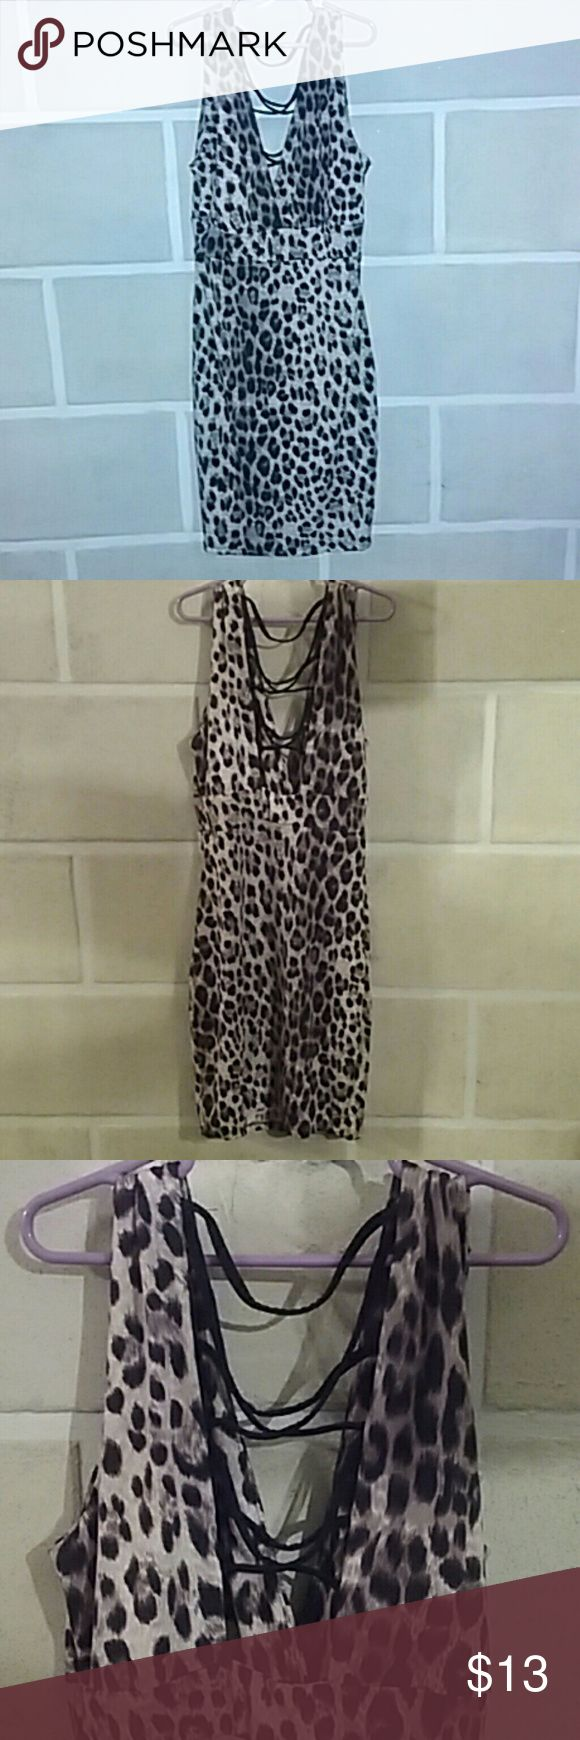 👗Cheetah Dress👗 Juniors, straight style cheetah dress! Size Medium. Worn once. MEOW!!  🚫 NO TRADES  🅱UNDLE & SAVE  ✅ USE OFFER BUTTON 🐾 PET FRIENDLY Dresses